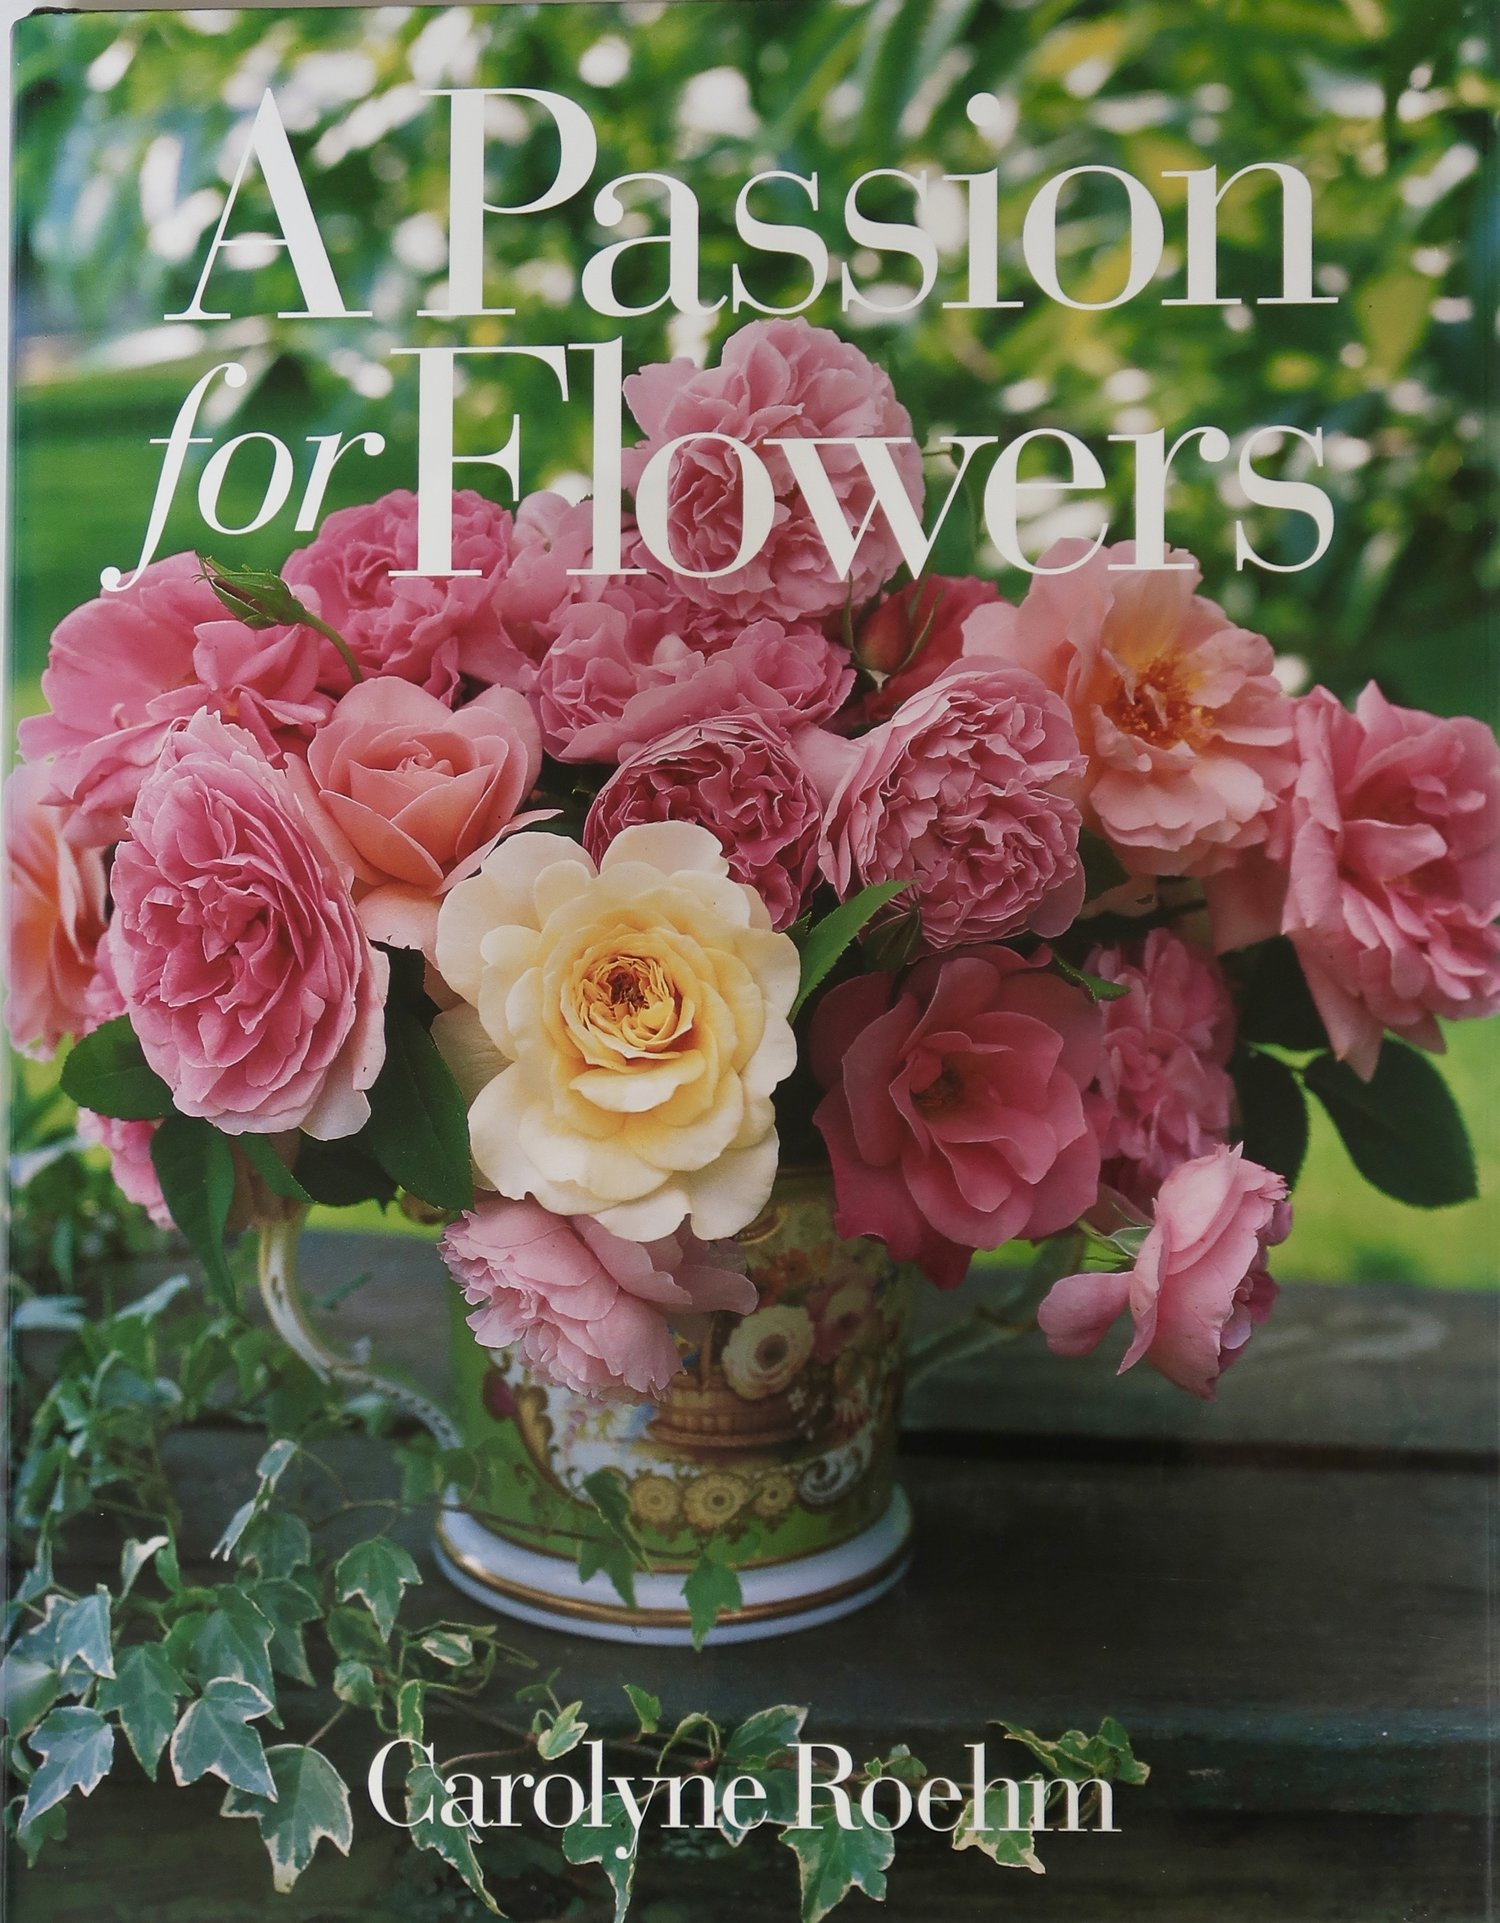 A Passion For Flowers book cover by Carolyn Rohm